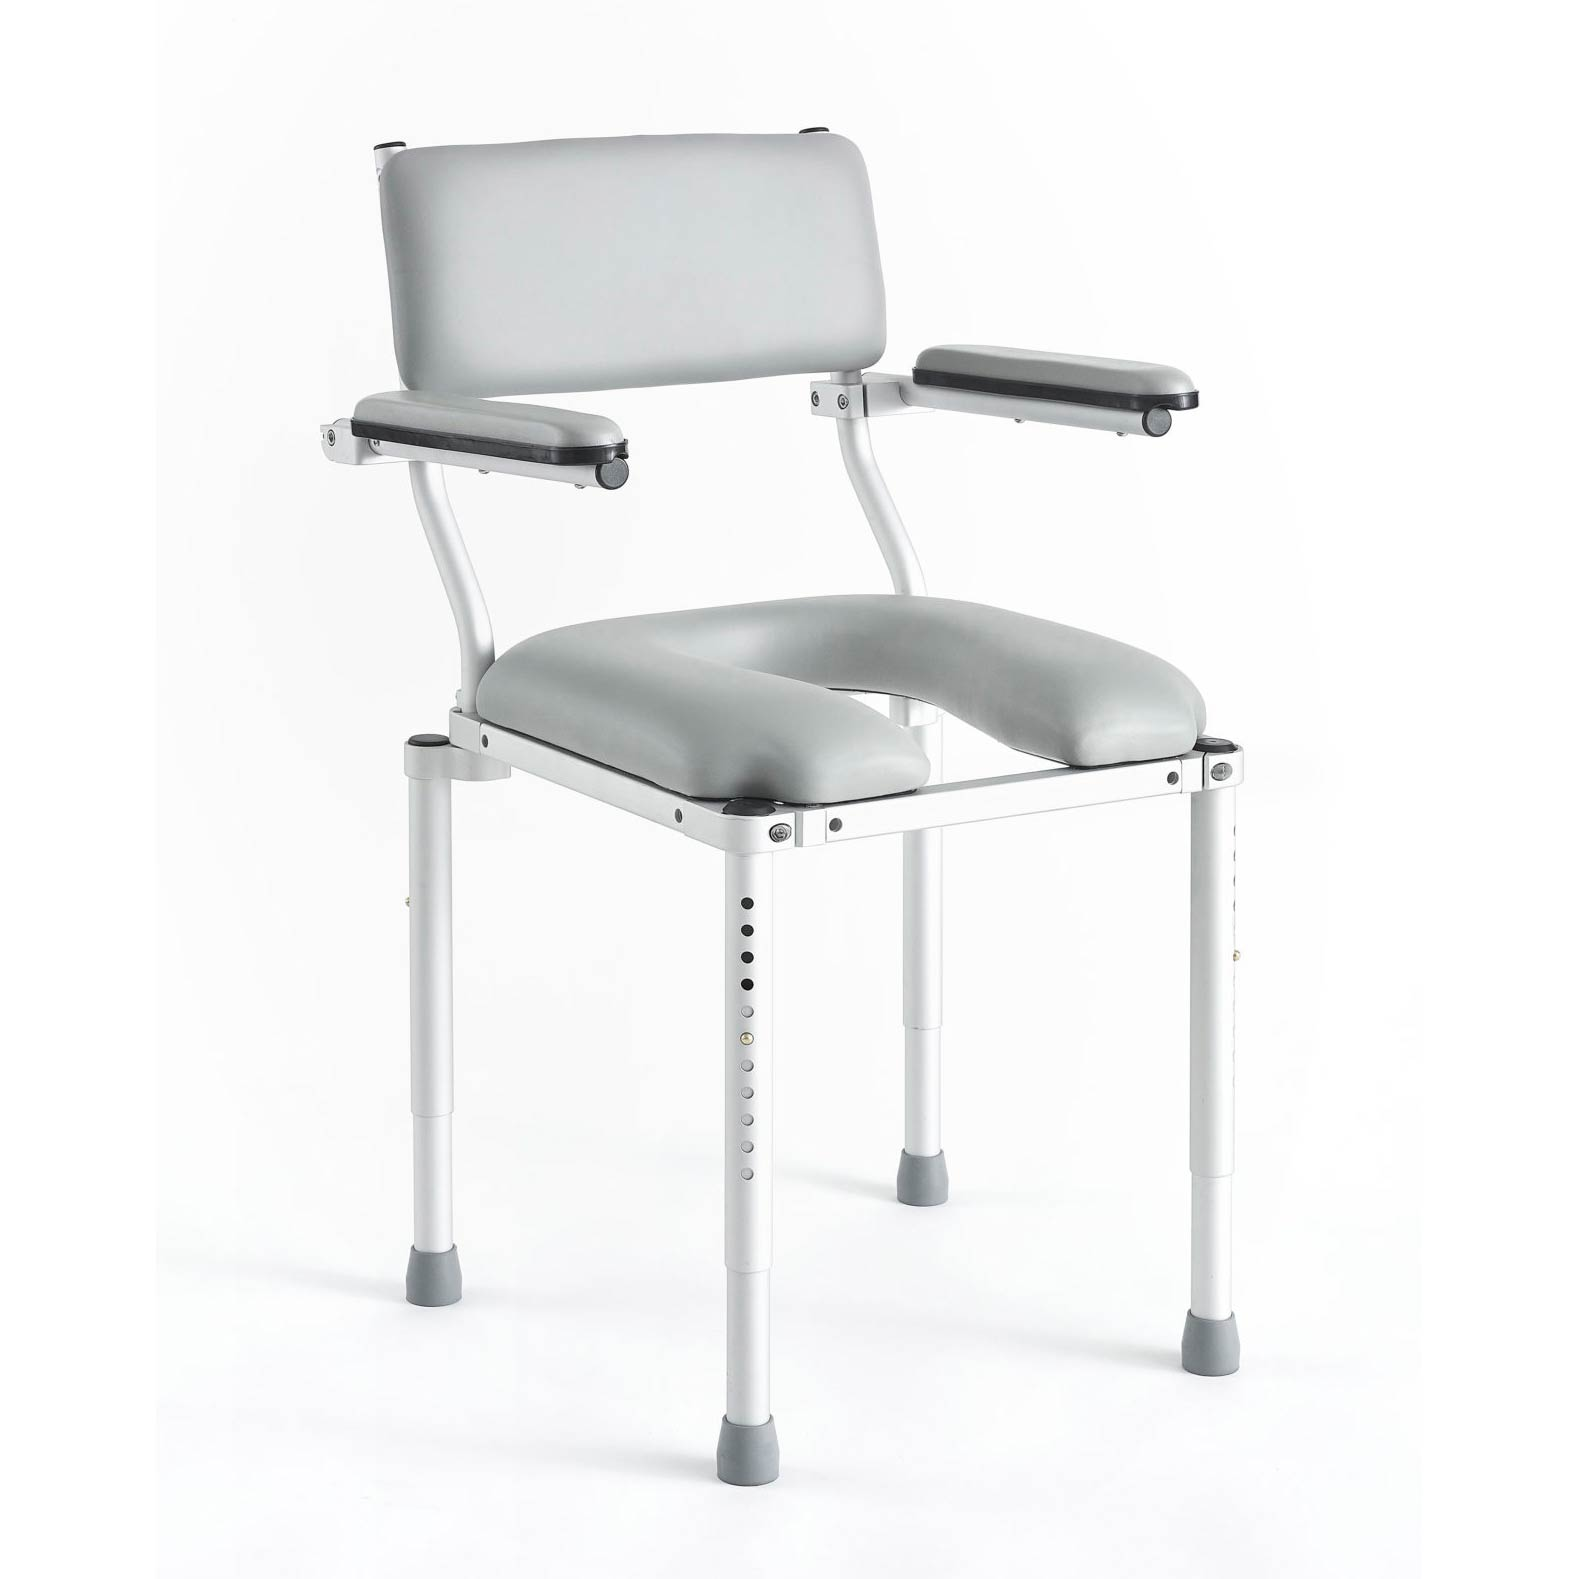 Nuprodx Multichair 3000 Tub And Toilet Chair | Medicaleshop